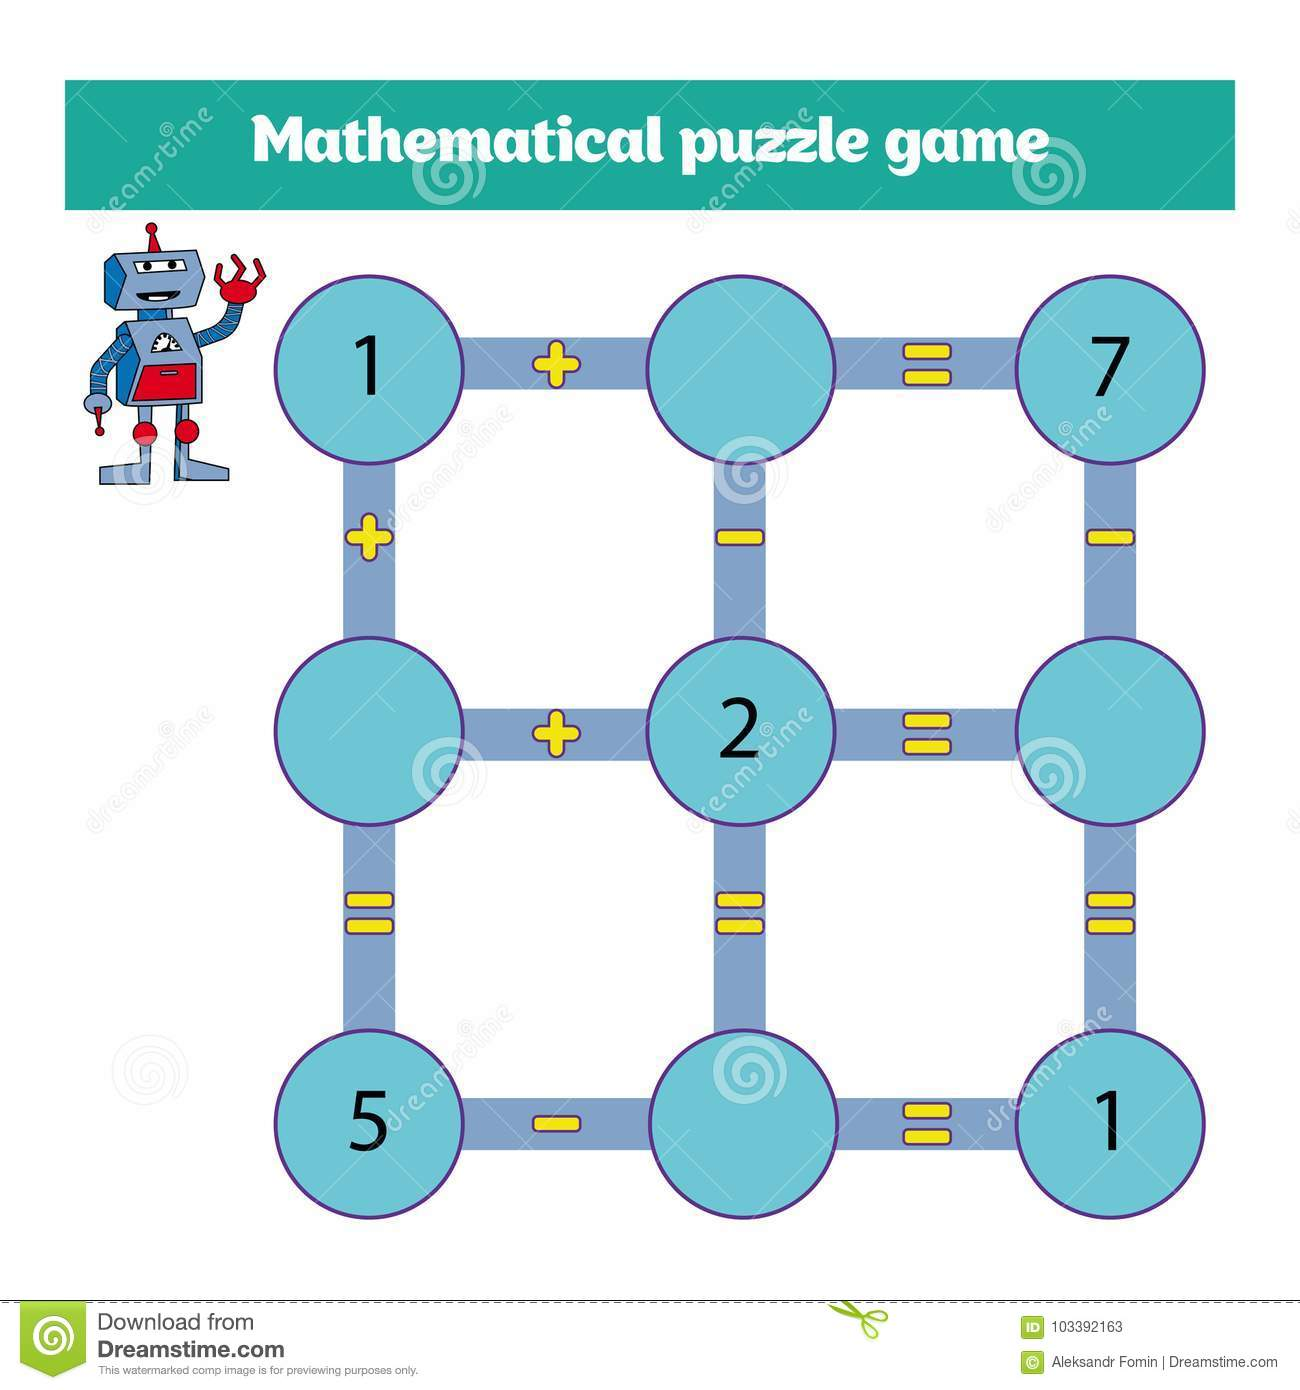 Mathematical Puzzle Game Learning Mathematics Tasks For Addition For Preschool Children